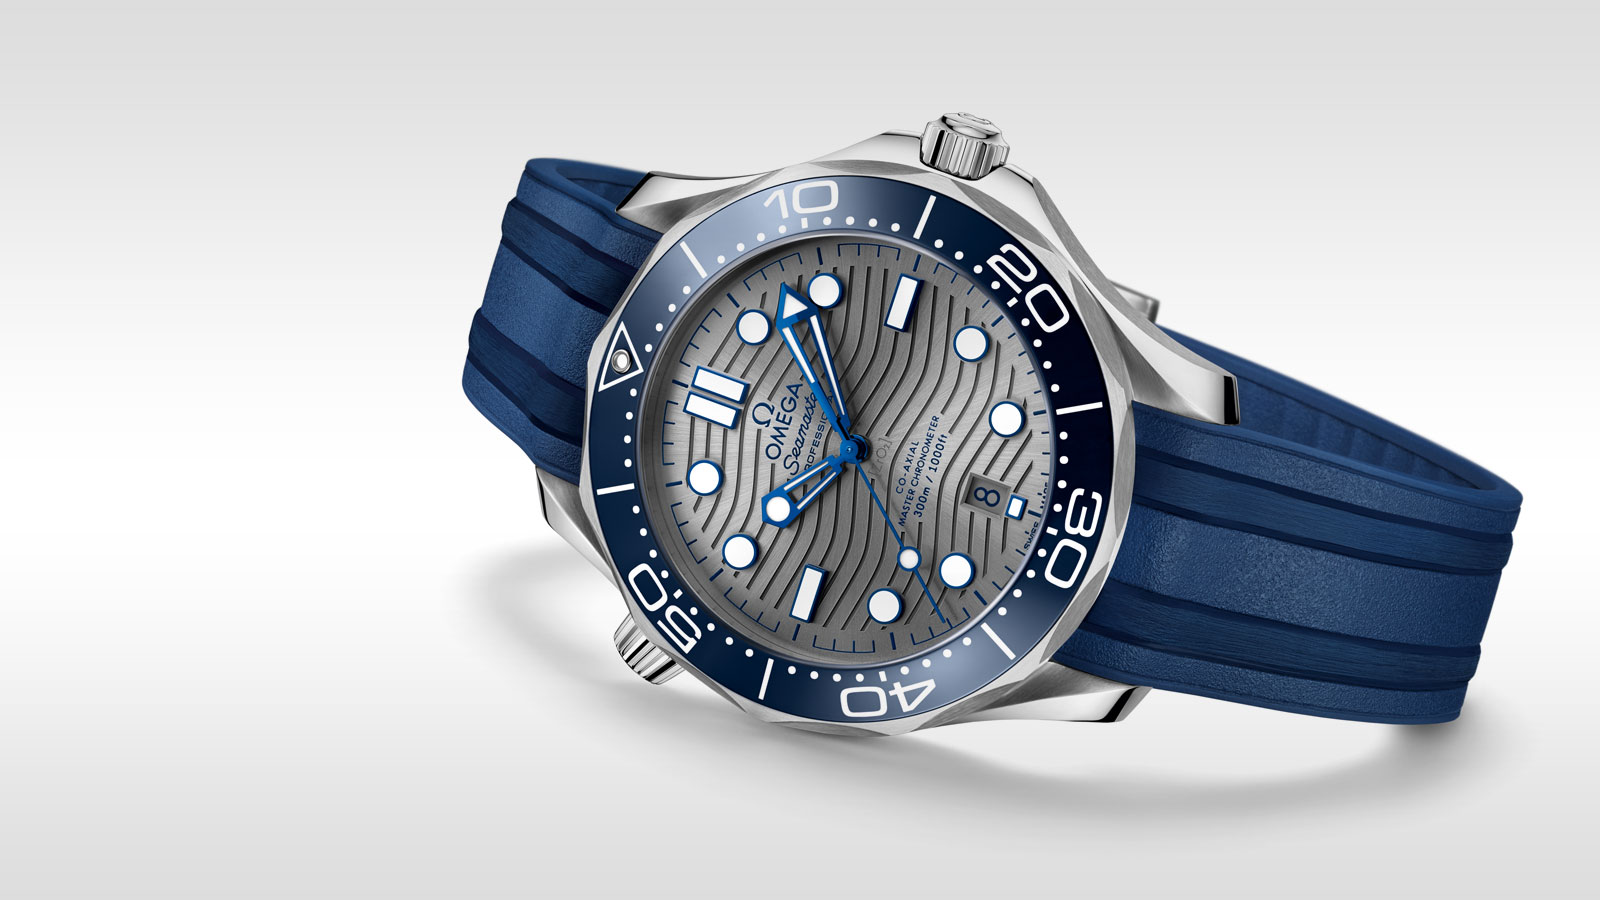 Seamaster Diver 300 M Diver 300M Omega Co‑Axial Master Chronometer 42 mm - 210.32.42.20.06.001 - Afficher 3